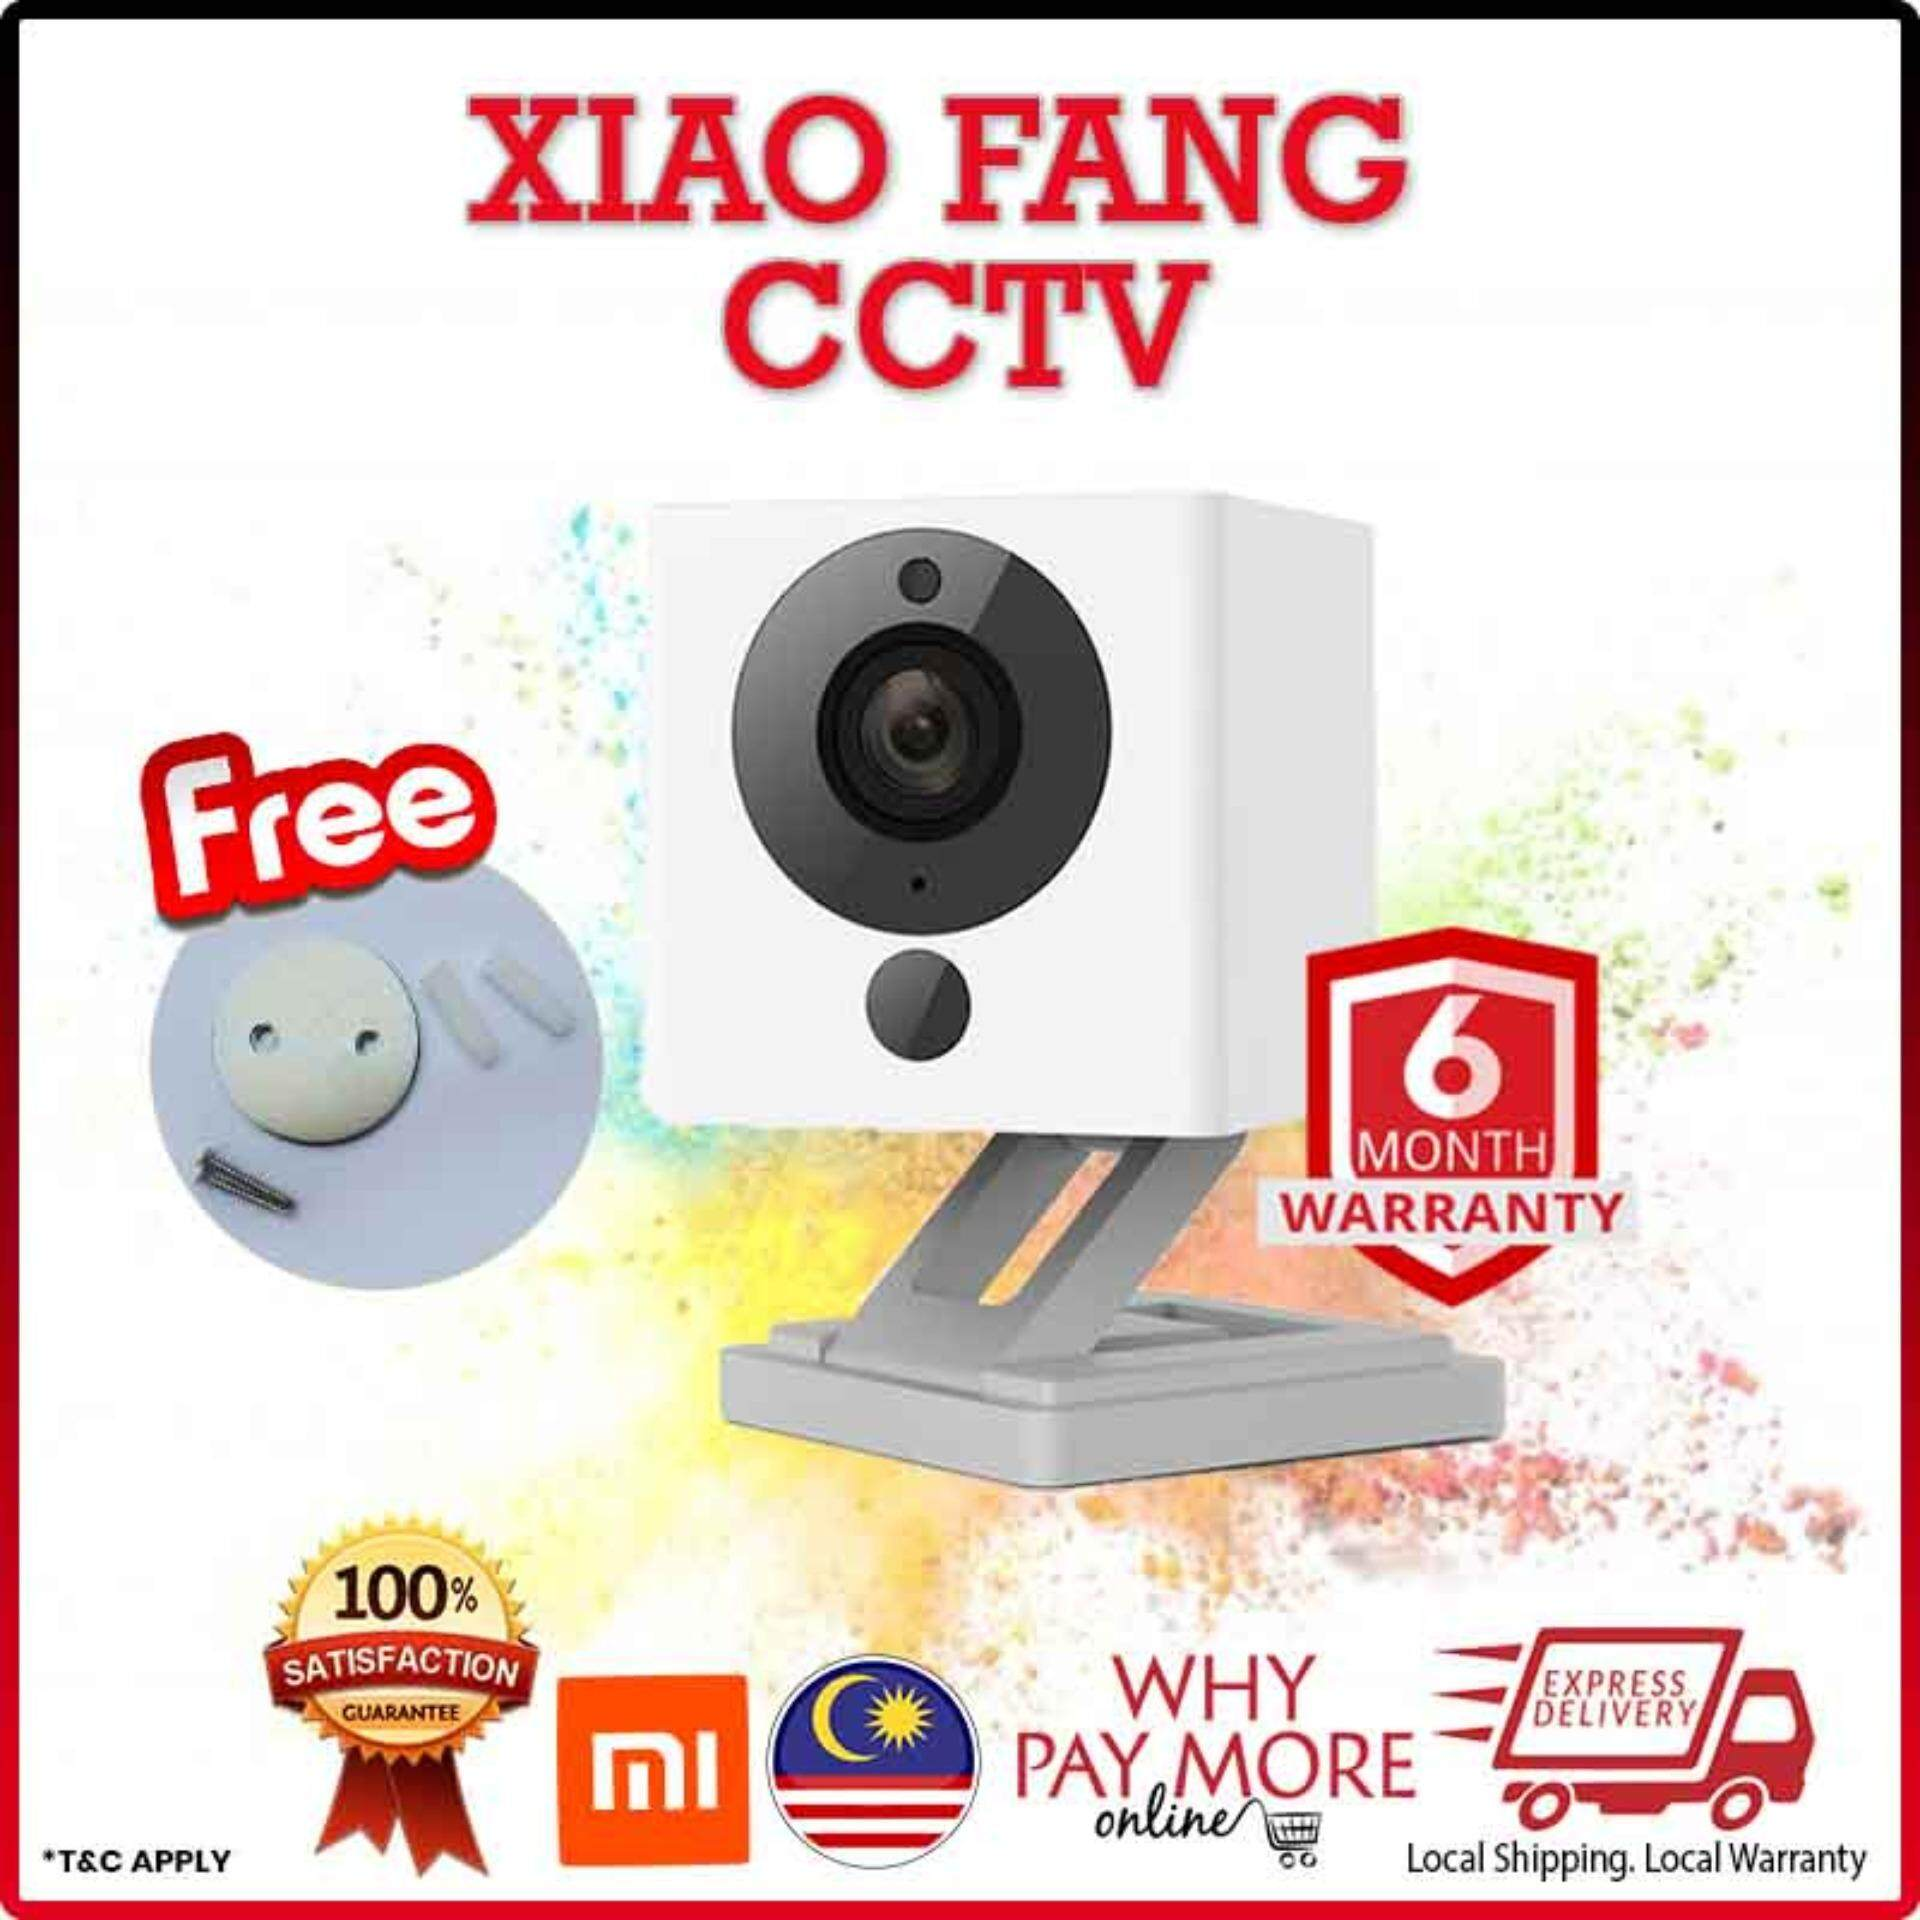 Xiaomi Xiao Fang IP Camera XiaoFang CCTV 1080P Security Full HD App